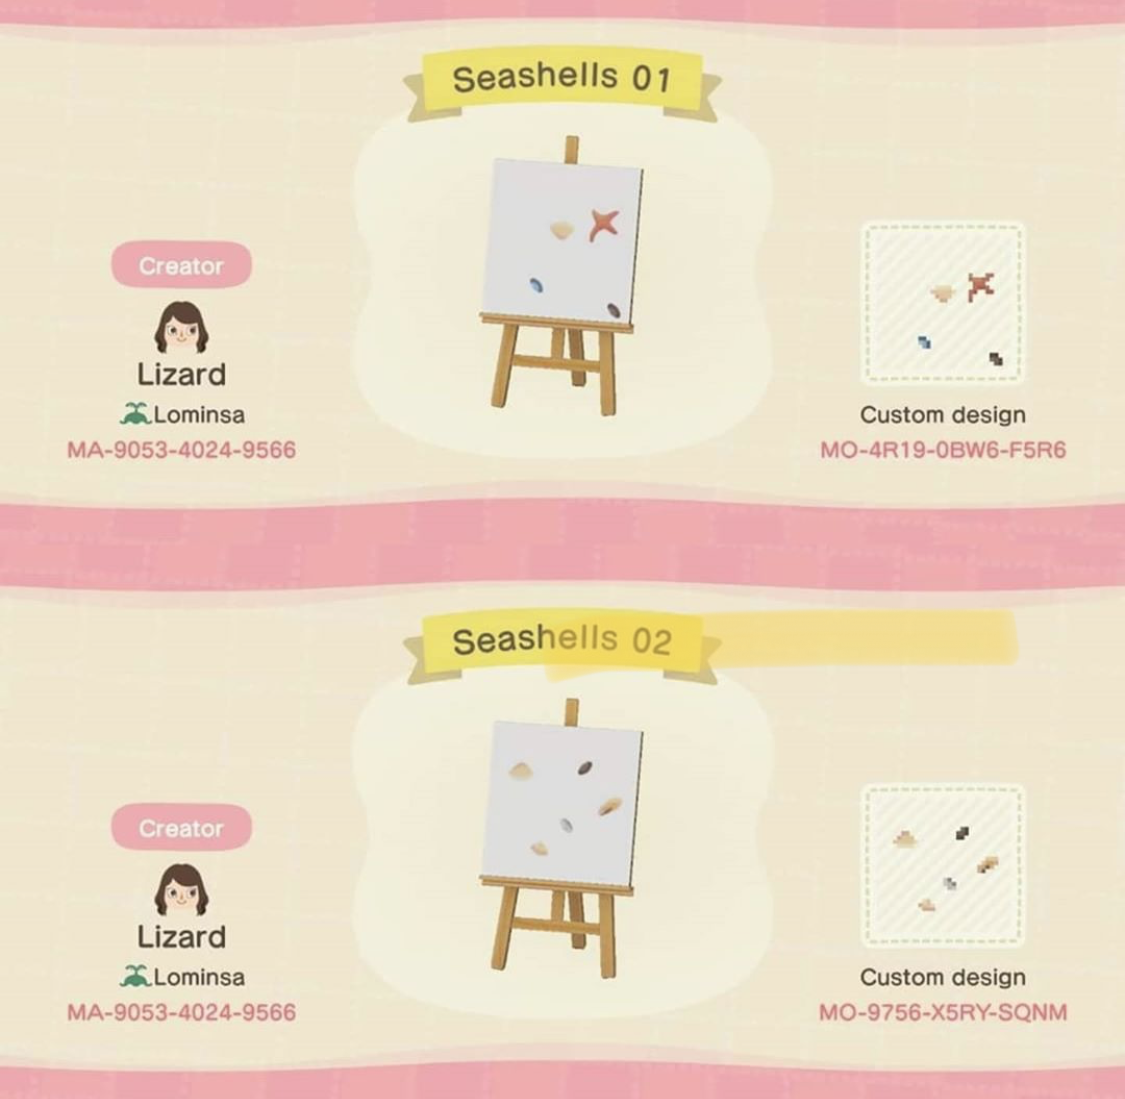 Seashells Designed By Lizard Of Lominsa Found On Acnh Custom Designs In 2020 Animal Crossing New Animal Crossing Animal Crossing Game